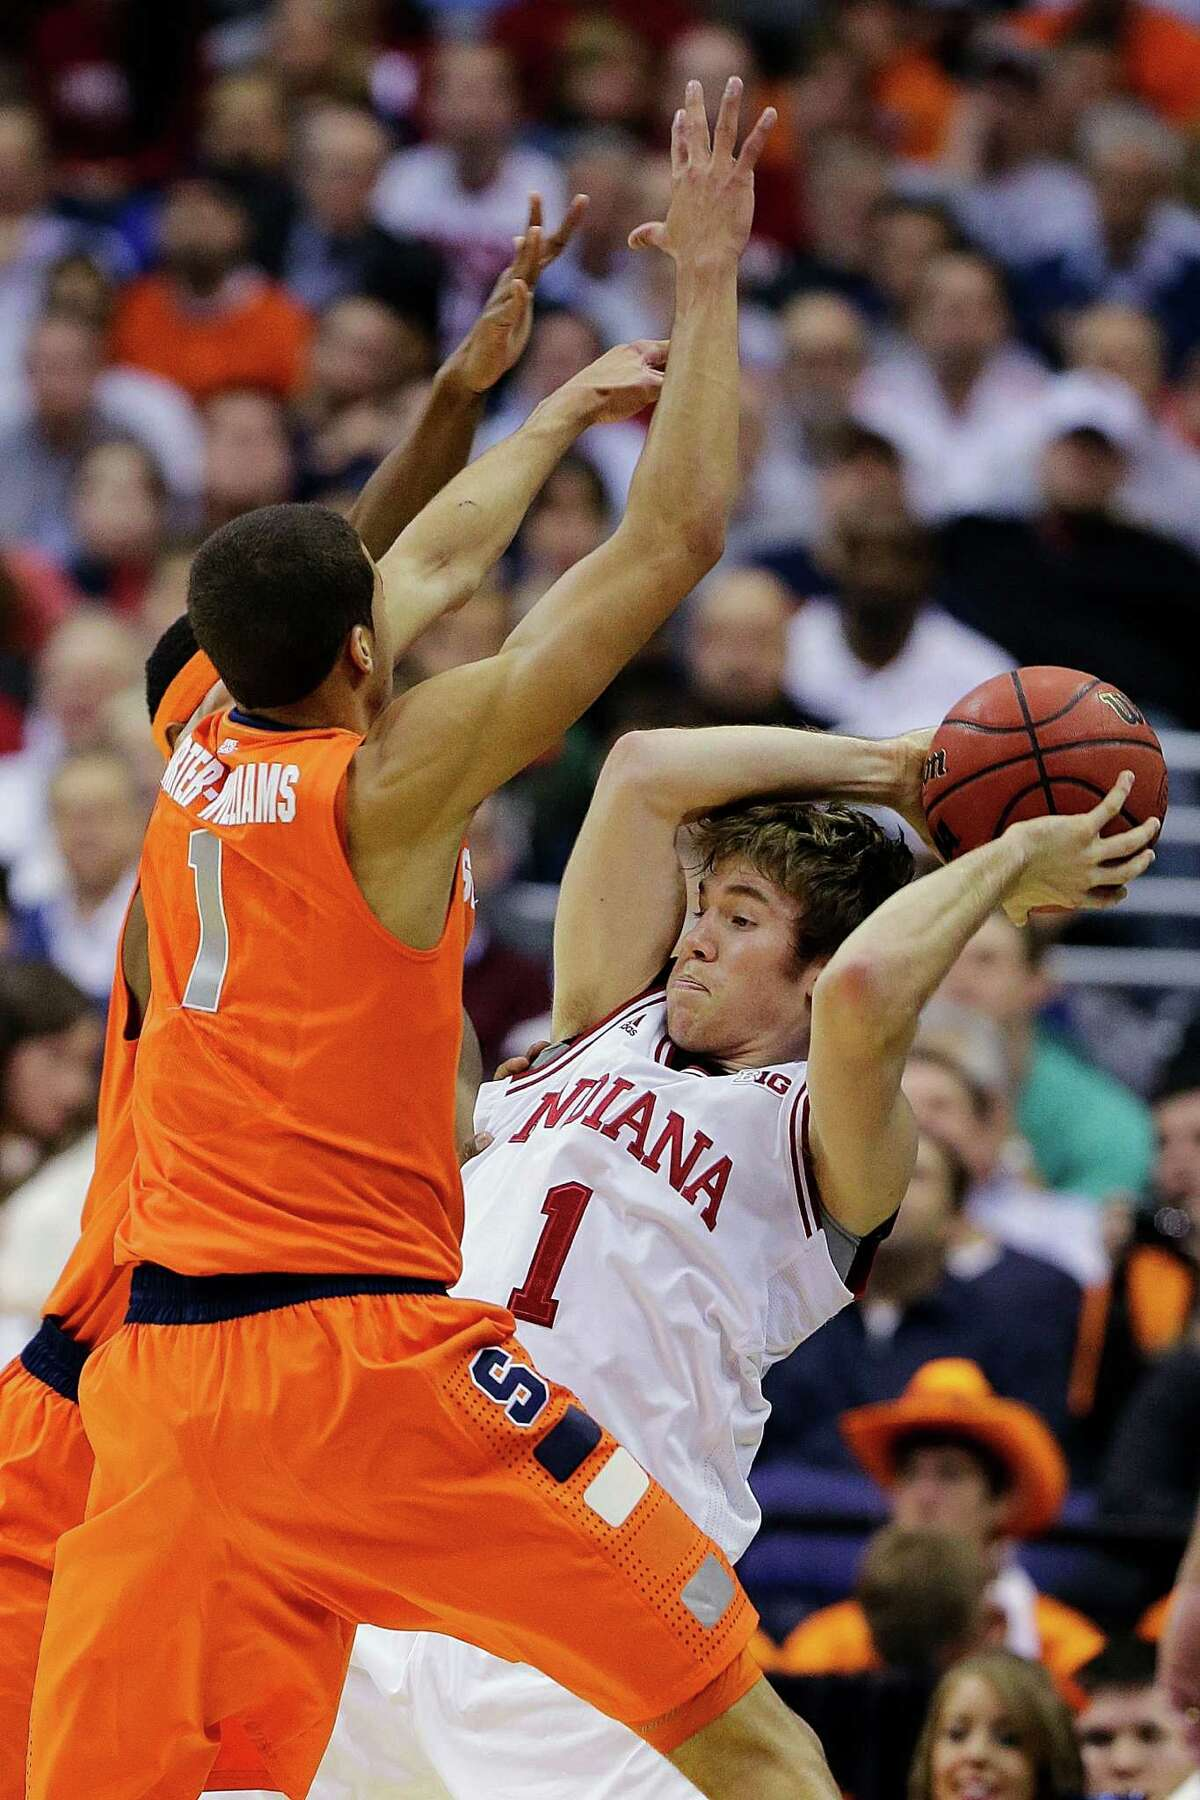 Guard Michael Carter-Williams, who is 6-6, is part of the reason Syracuse's trademark zone defense works so well, as Indiana's Jordan Hulls (1) found out in the East Regional semifinals.